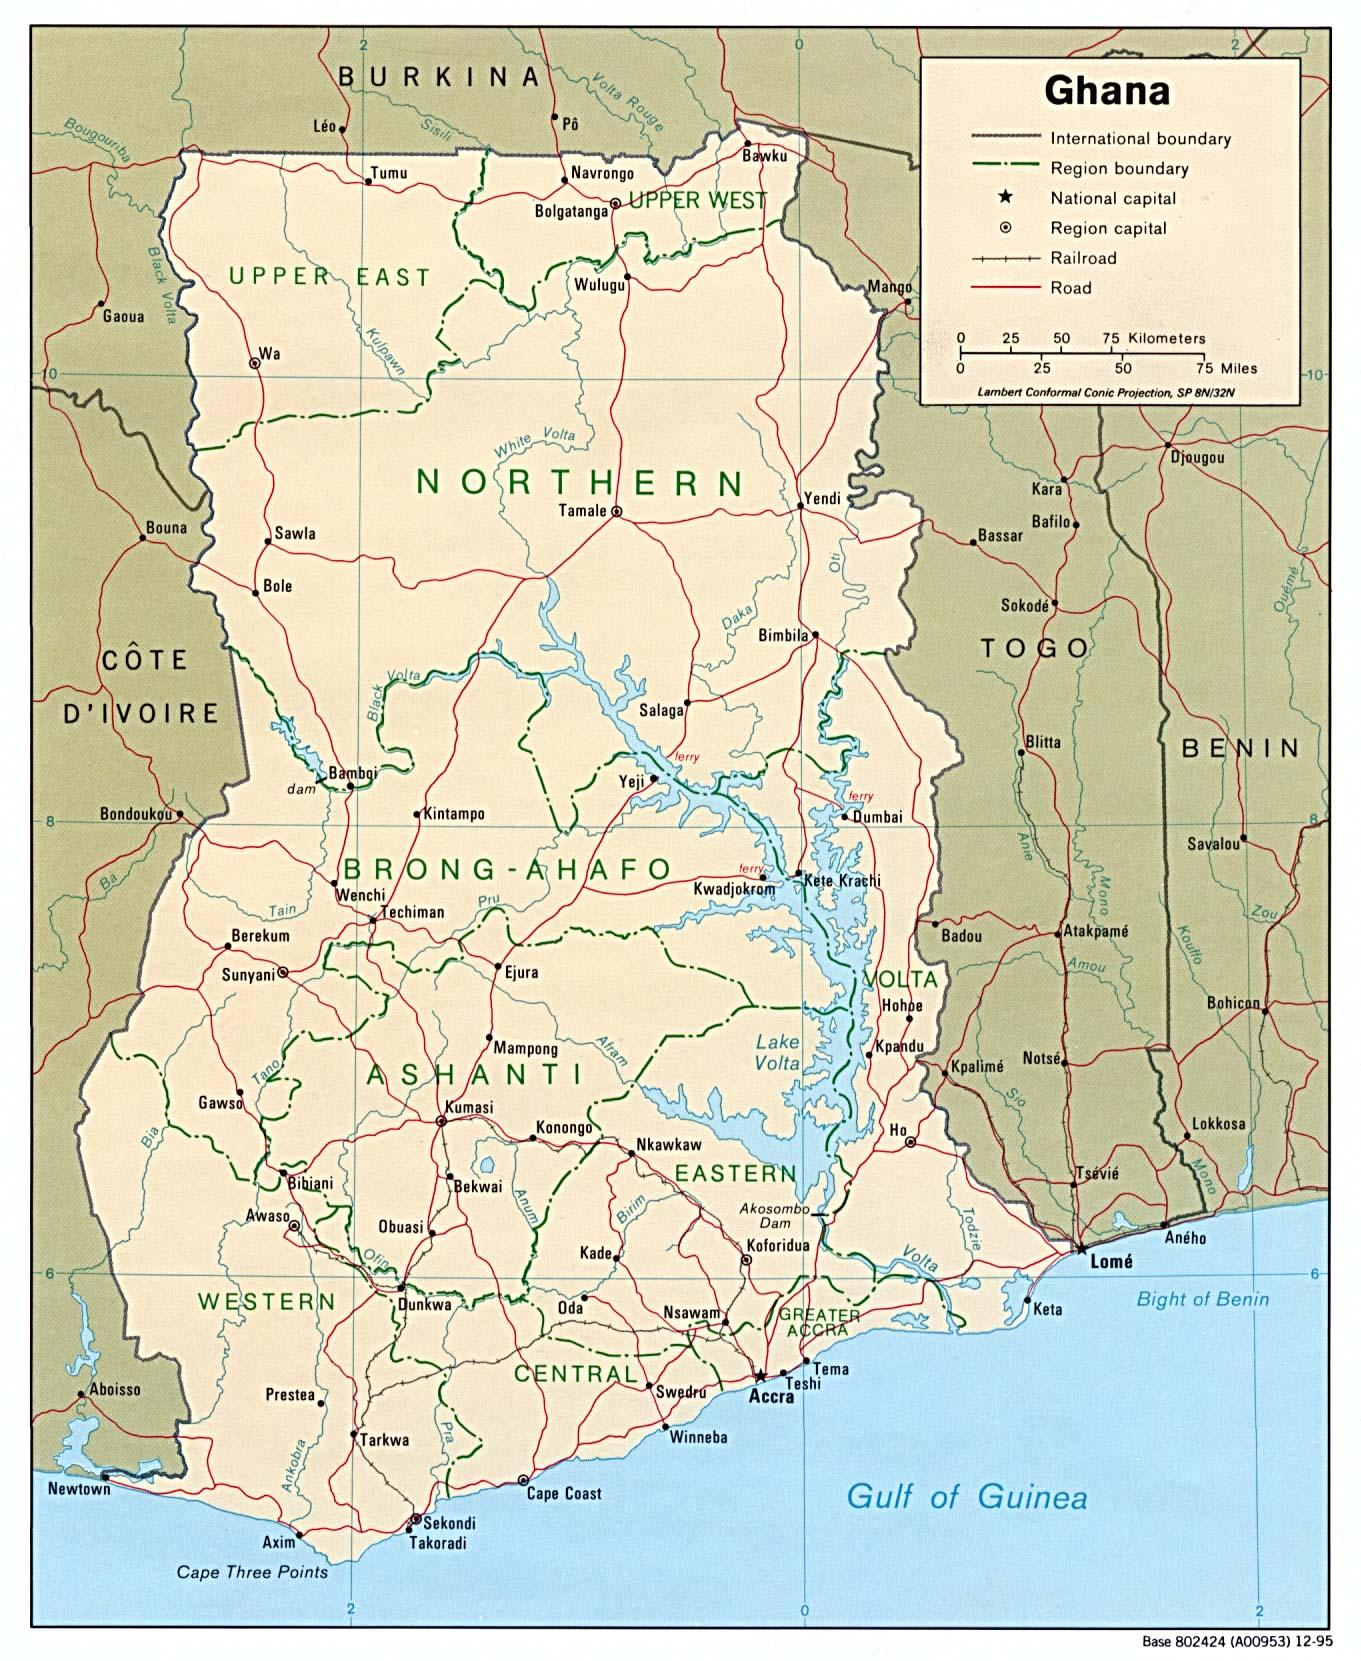 Map Of Ghana Showing Towns Map of ghana showing towns   Ghana map with cities and towns